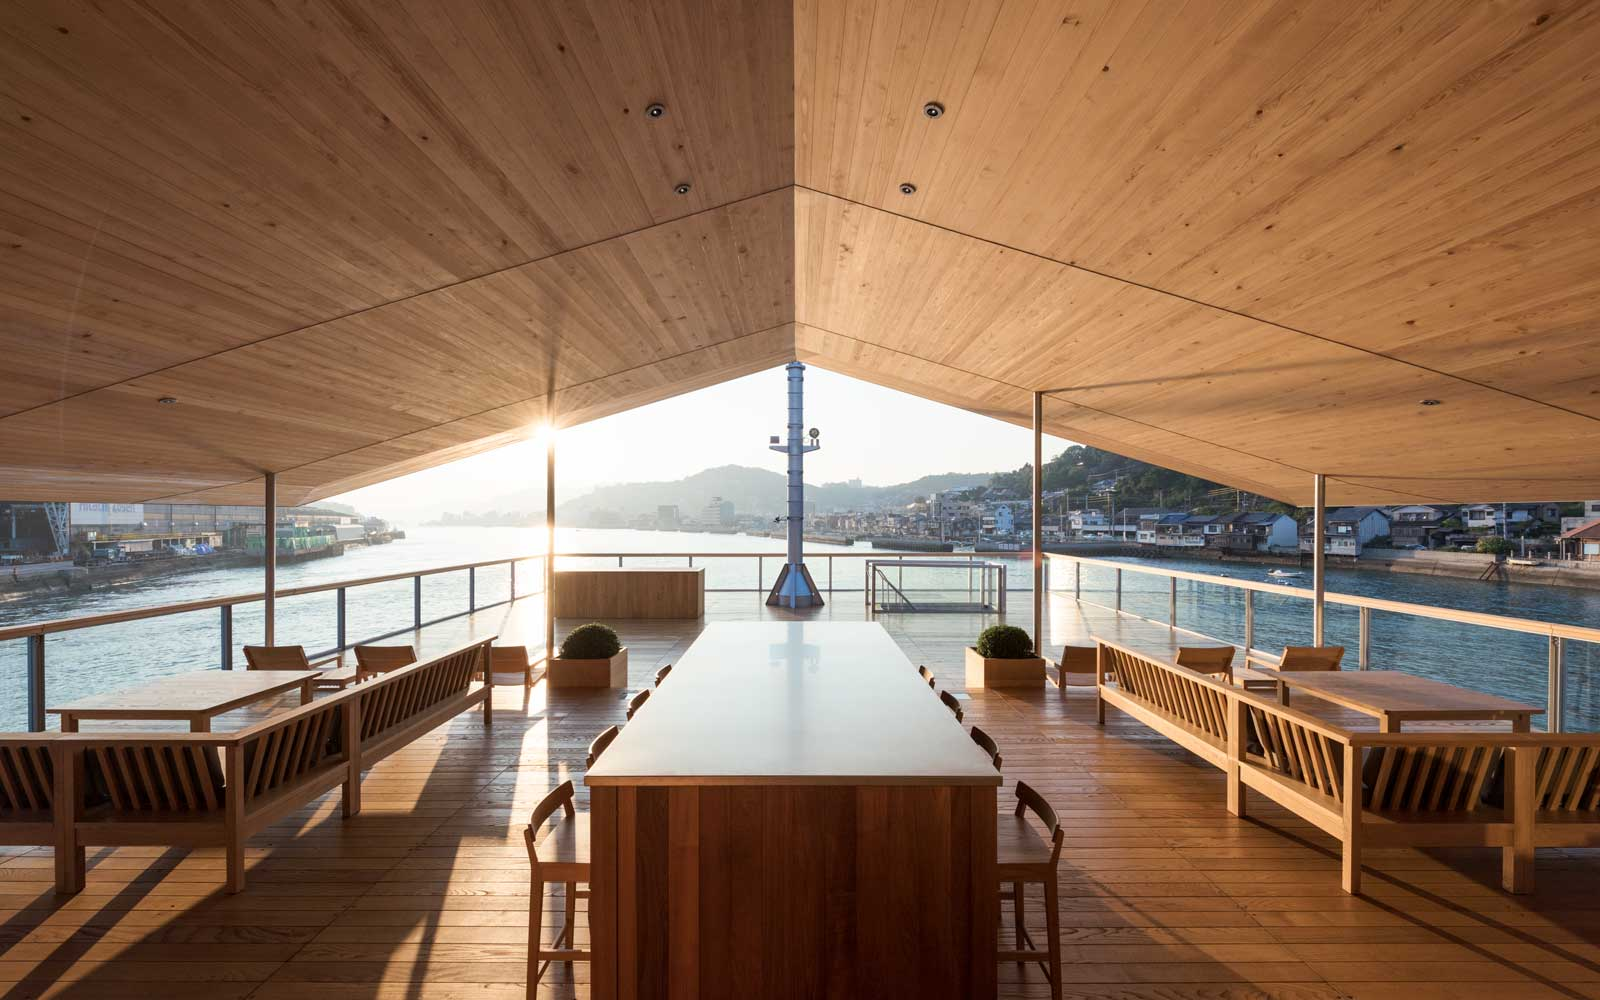 Inside the new Guntû, Japan's Floating Luxury Ryokan